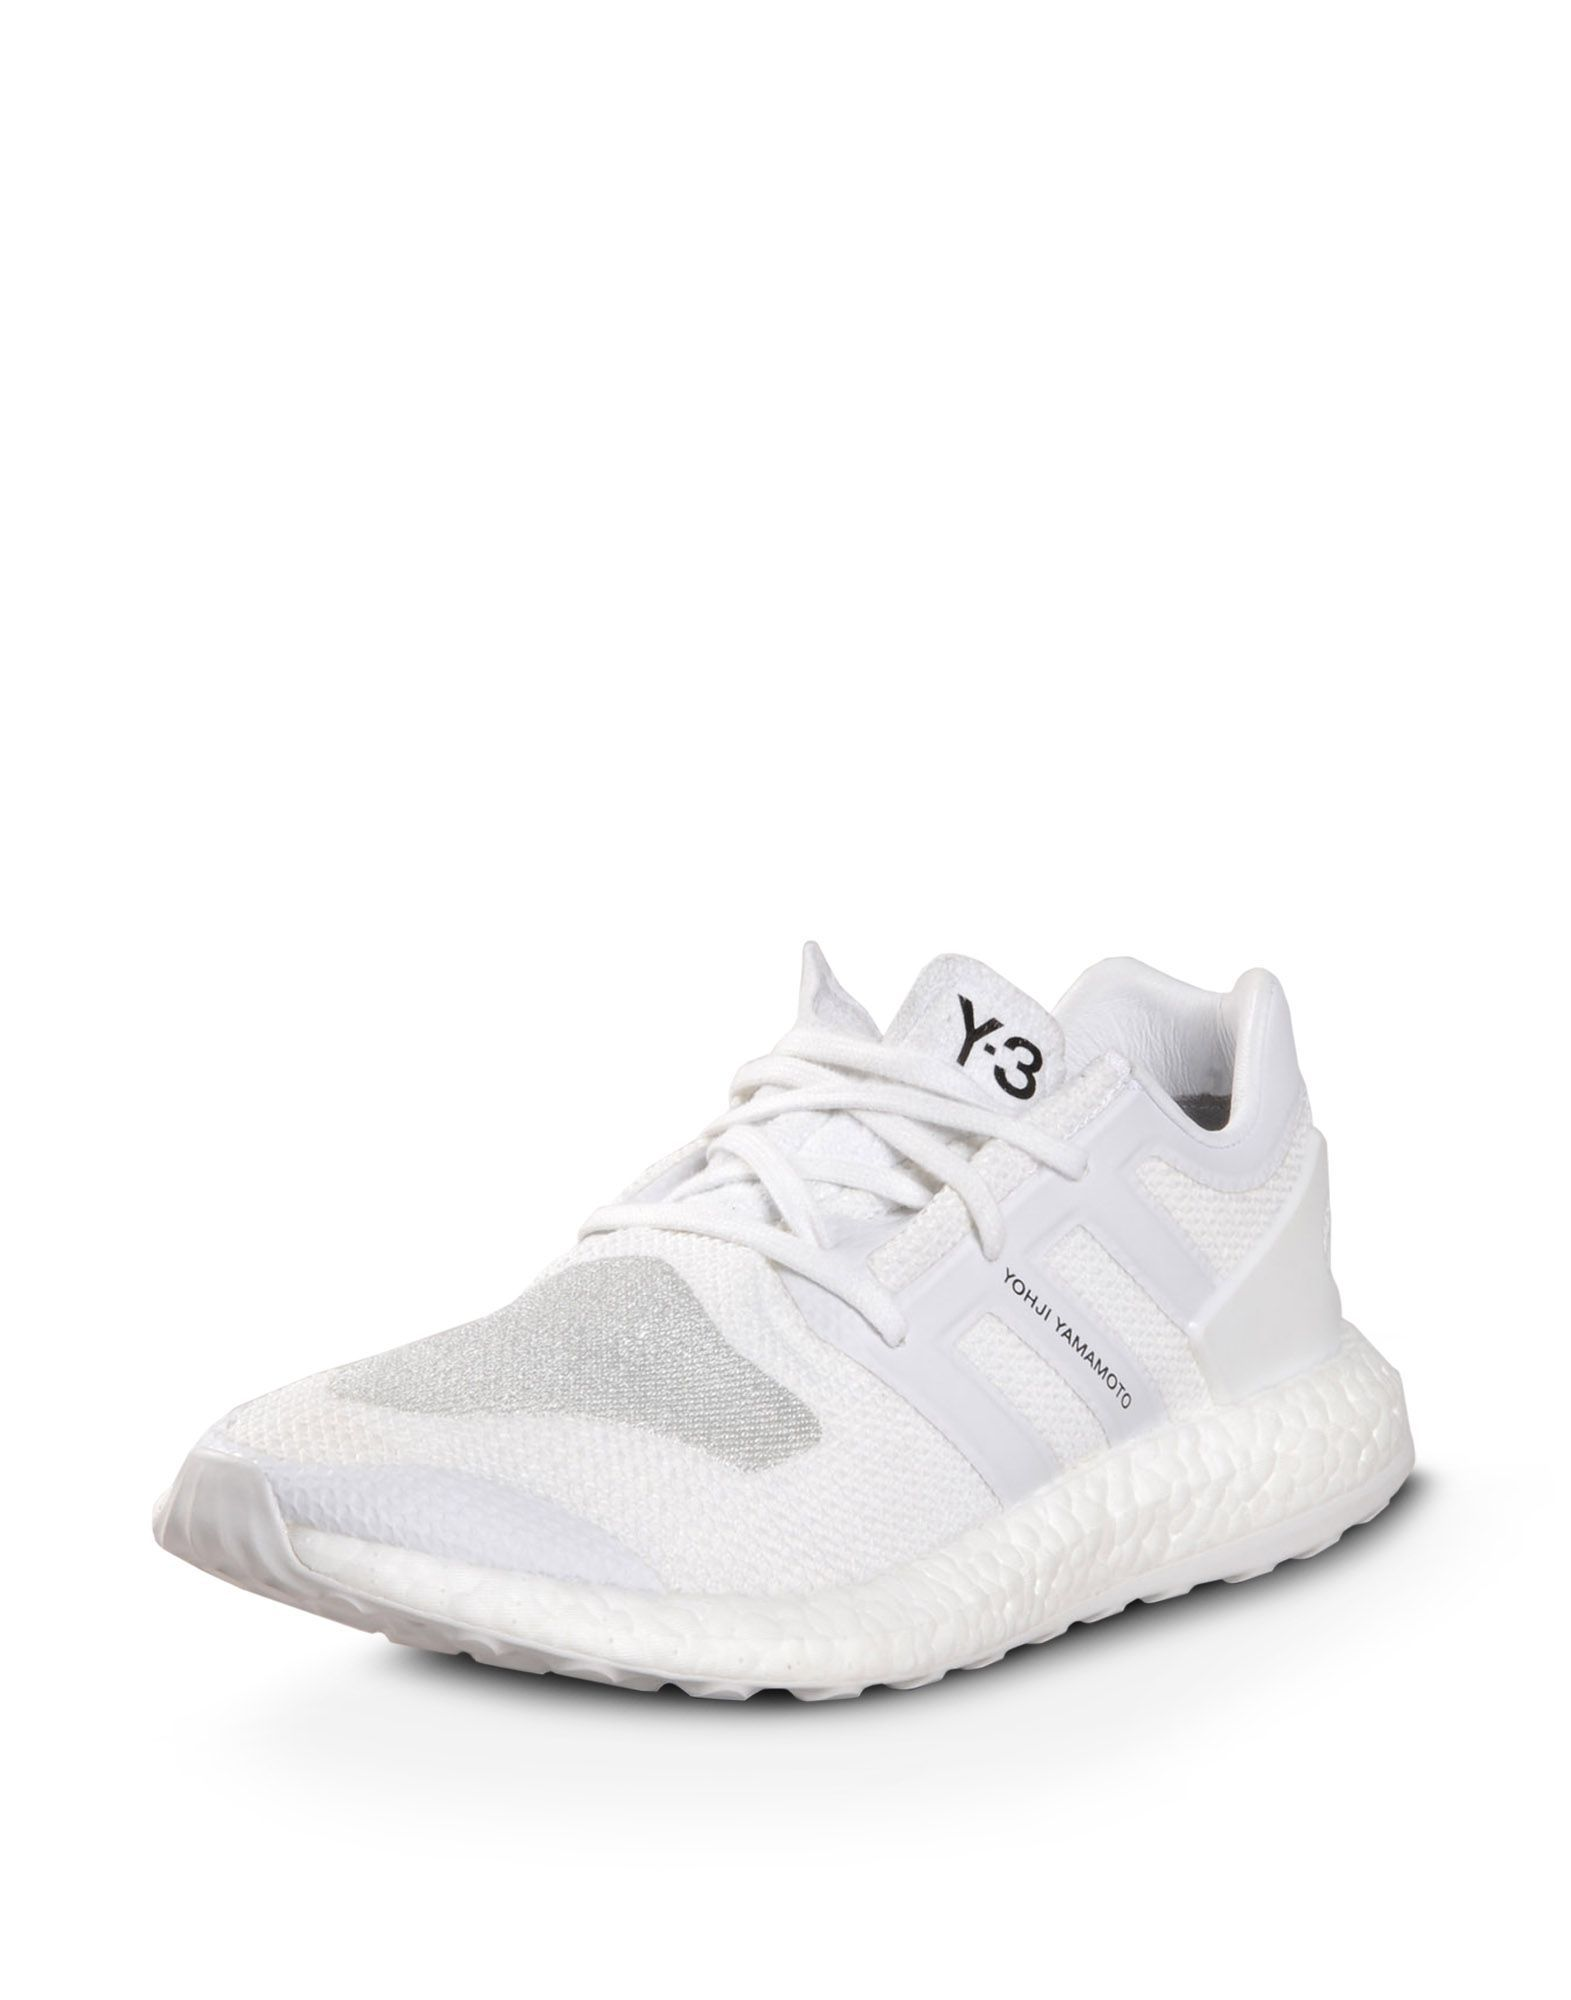 7b33816c6779d Y-3 PUREBOOST Shoes man Y-3 adidas